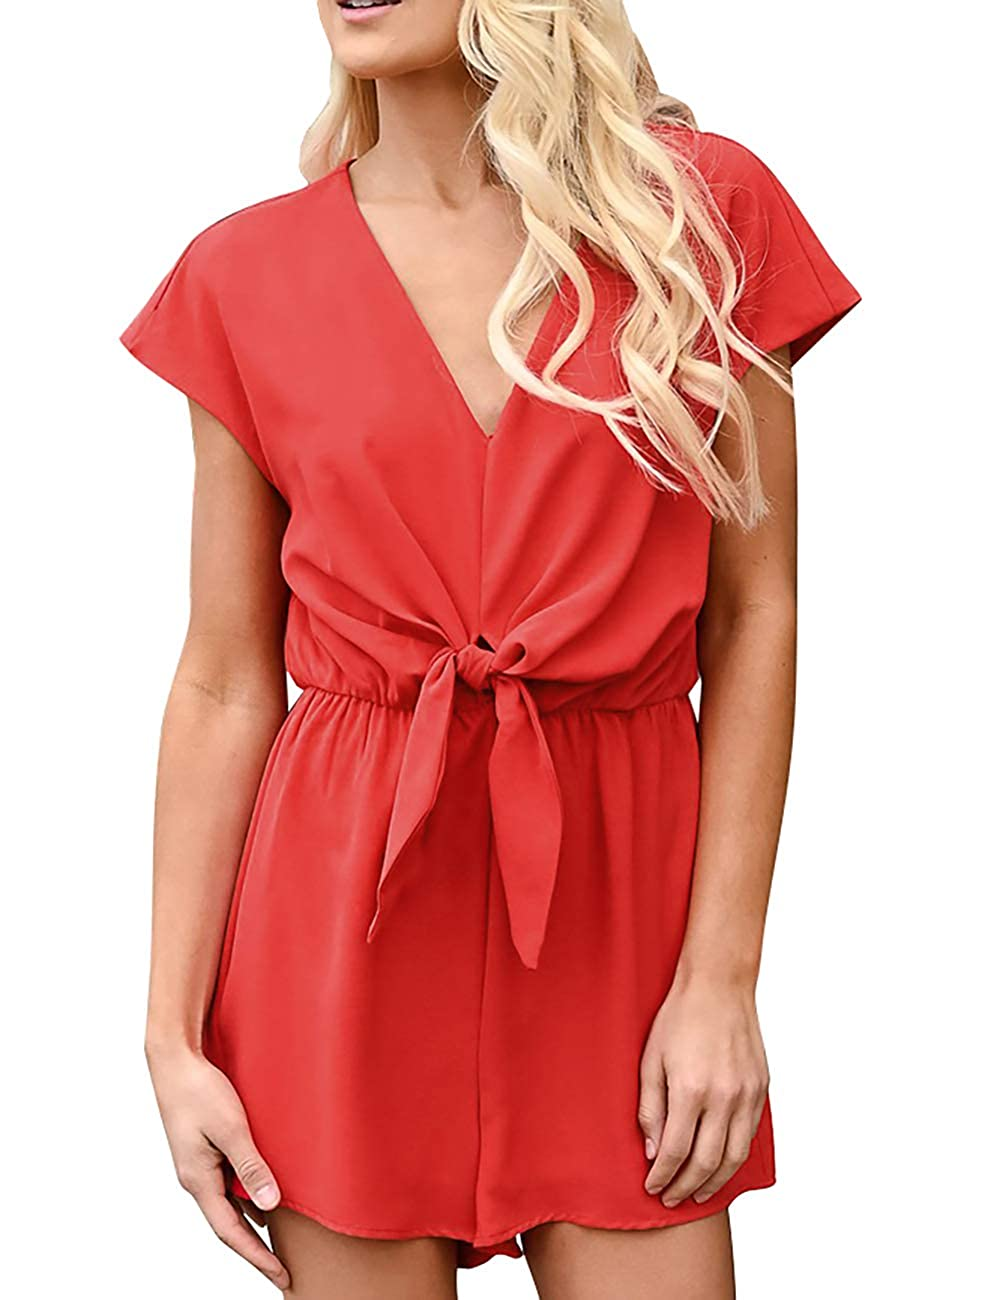 SEBOWEL Womens Summer Casual Loose Tie Knot V Neck Short Sleeve Shorts Rompers Jumpsuits